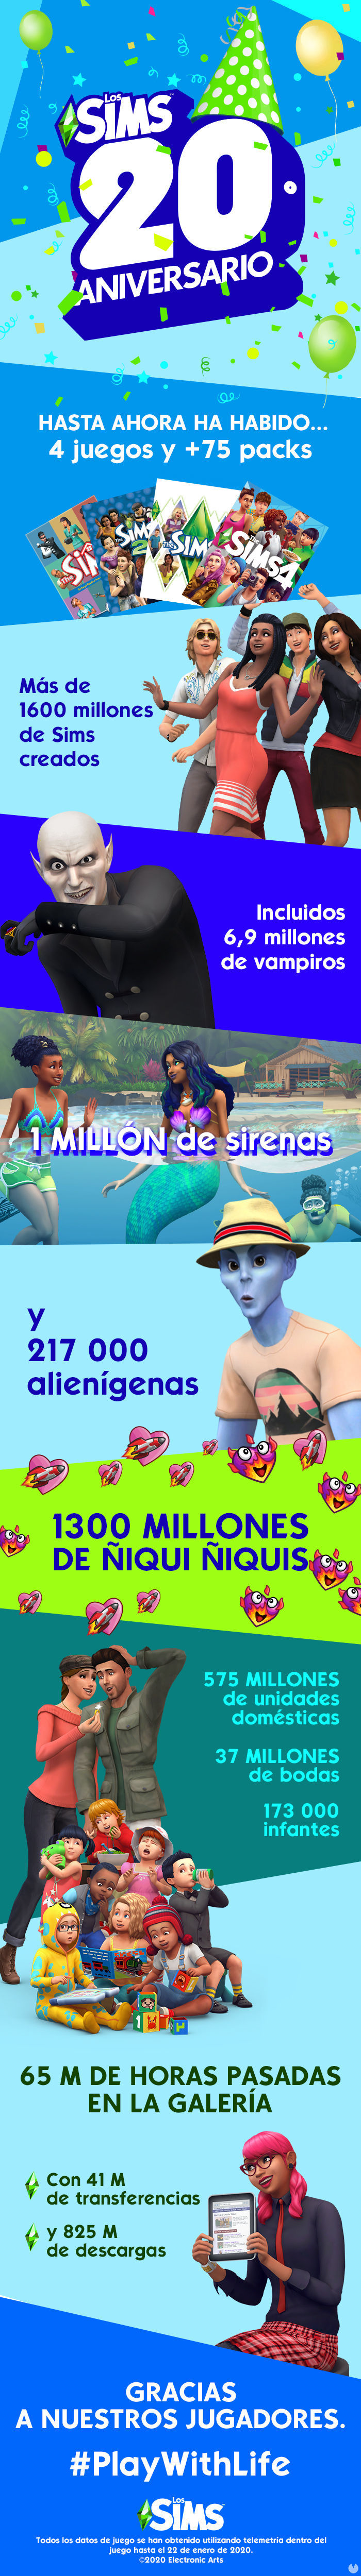 "players of The Sims have made ""1300 million ñiqui ñiquis"""